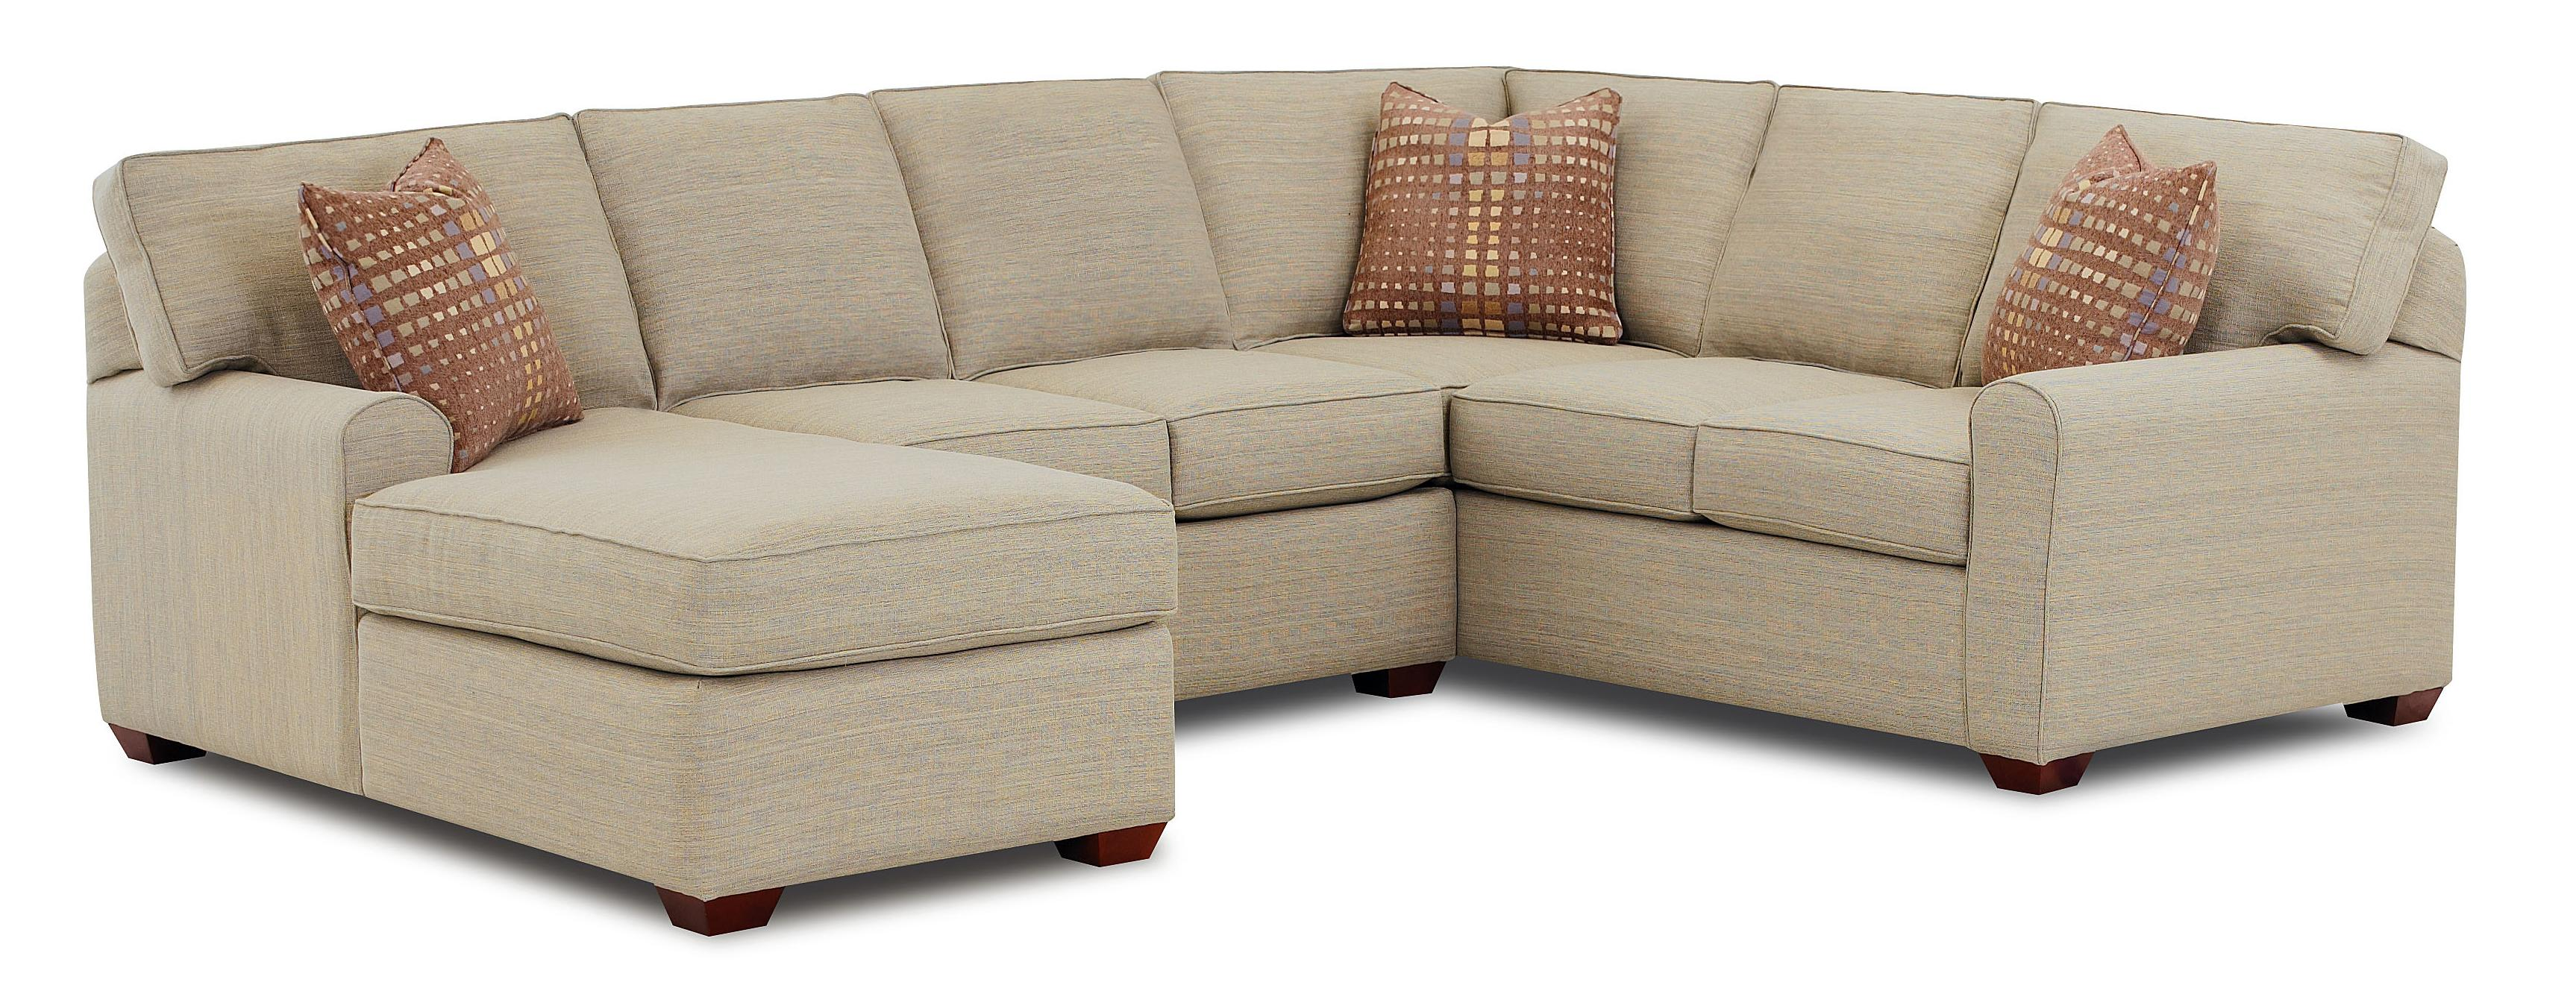 Sectional Couch Top View